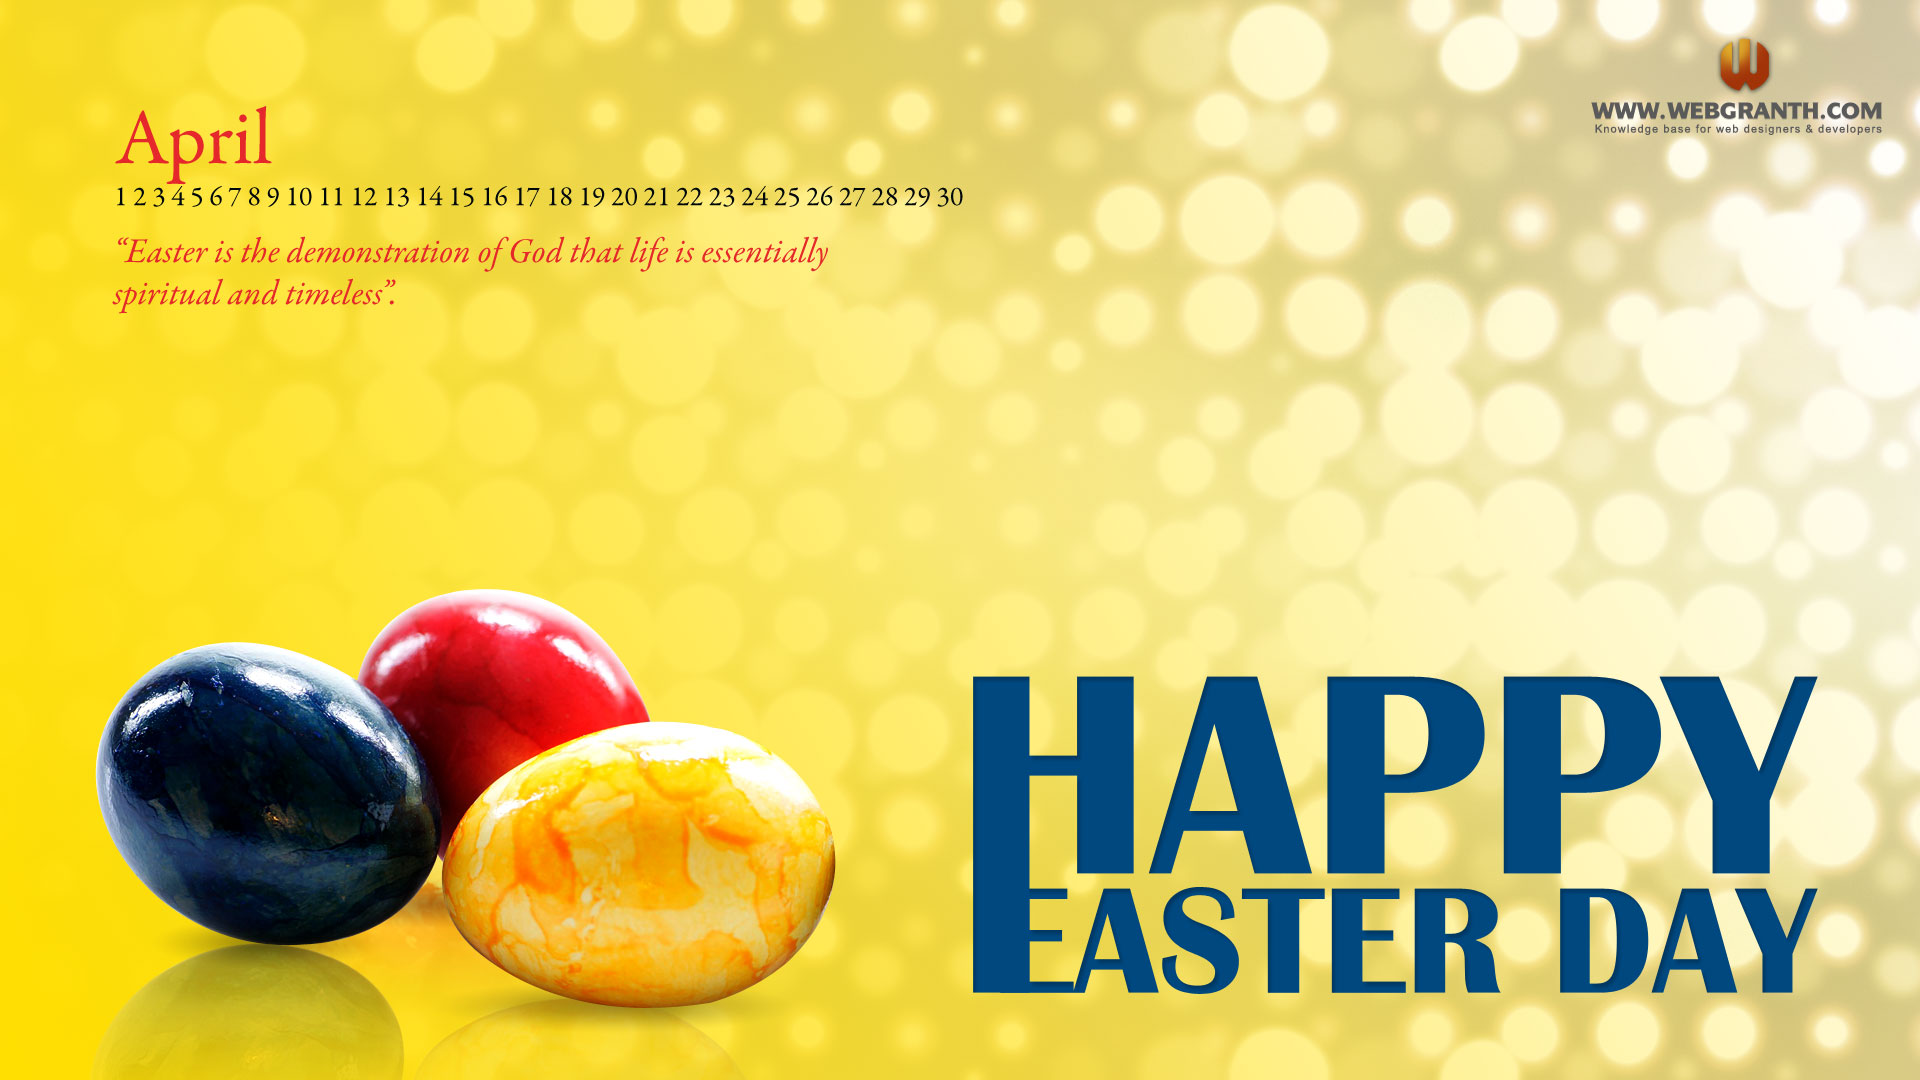 Happy Easter Day Wallpapers Happy Easter Thanksgiving 2018 1920x1080